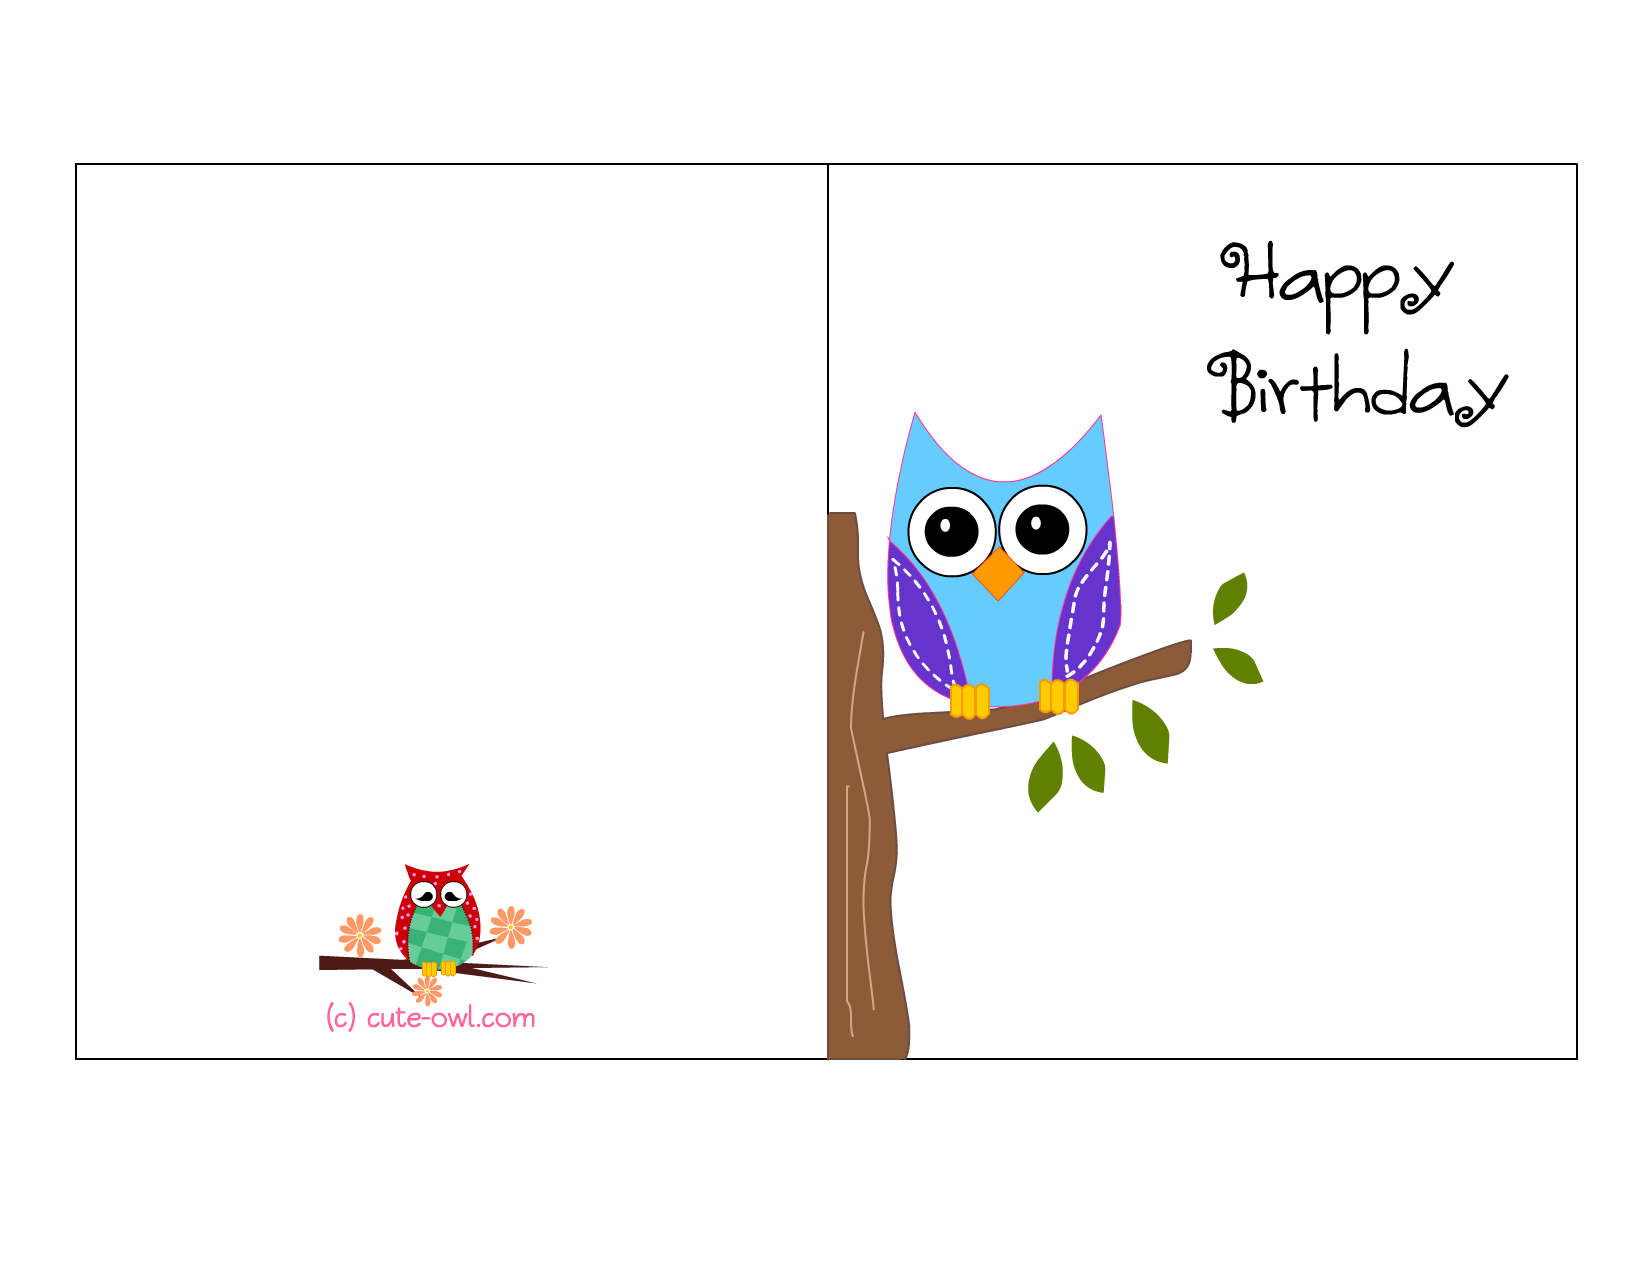 printable birthday card templates Kleo.beachfix.co